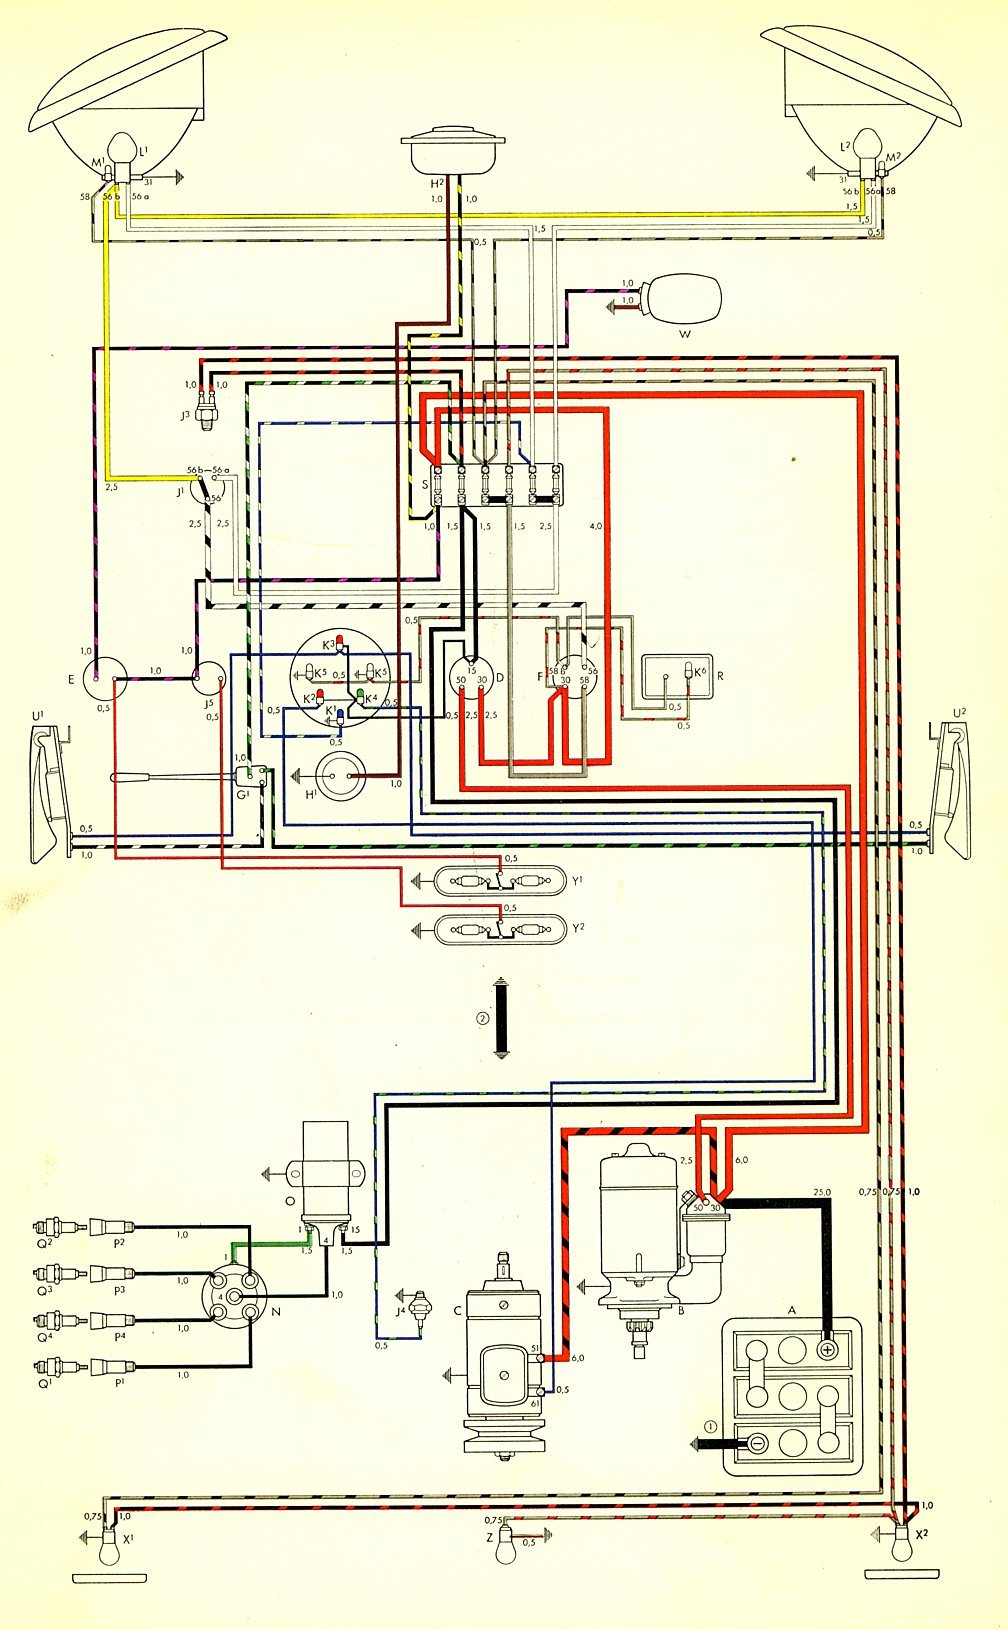 Type 2 Wiring Diagrams G1 Diagram